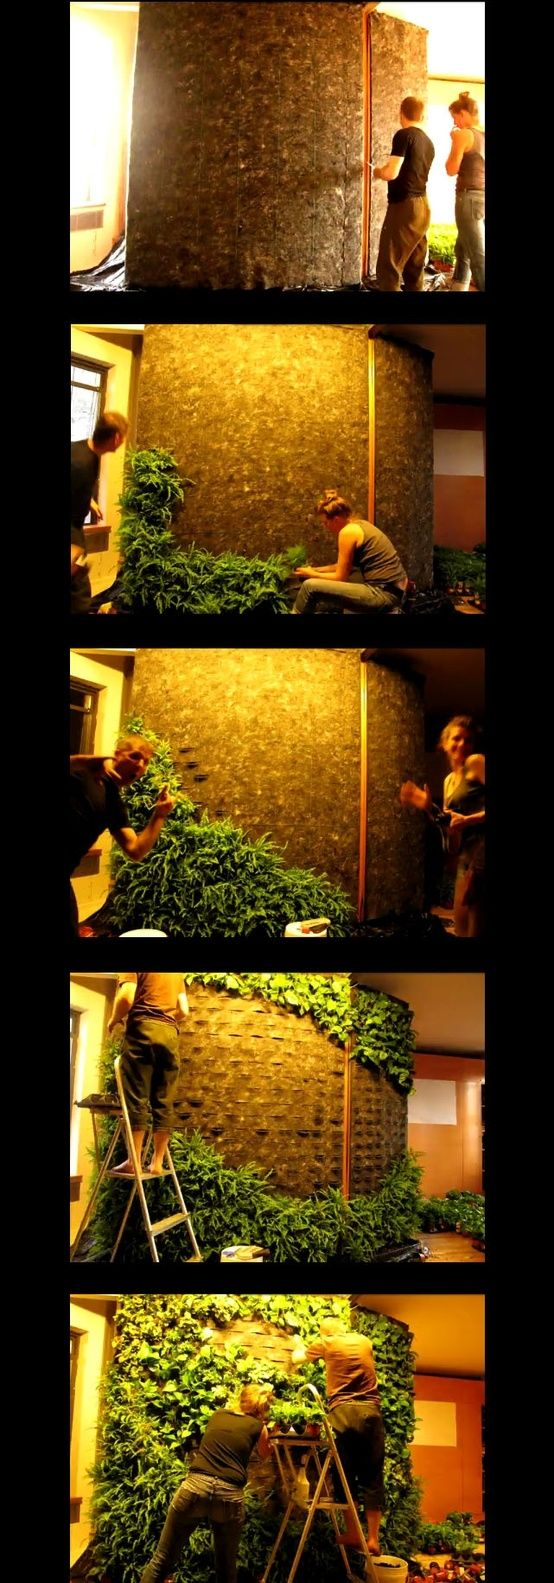 251 best Vertical Gardens, Interior/Exterior Living Walls. images on ...